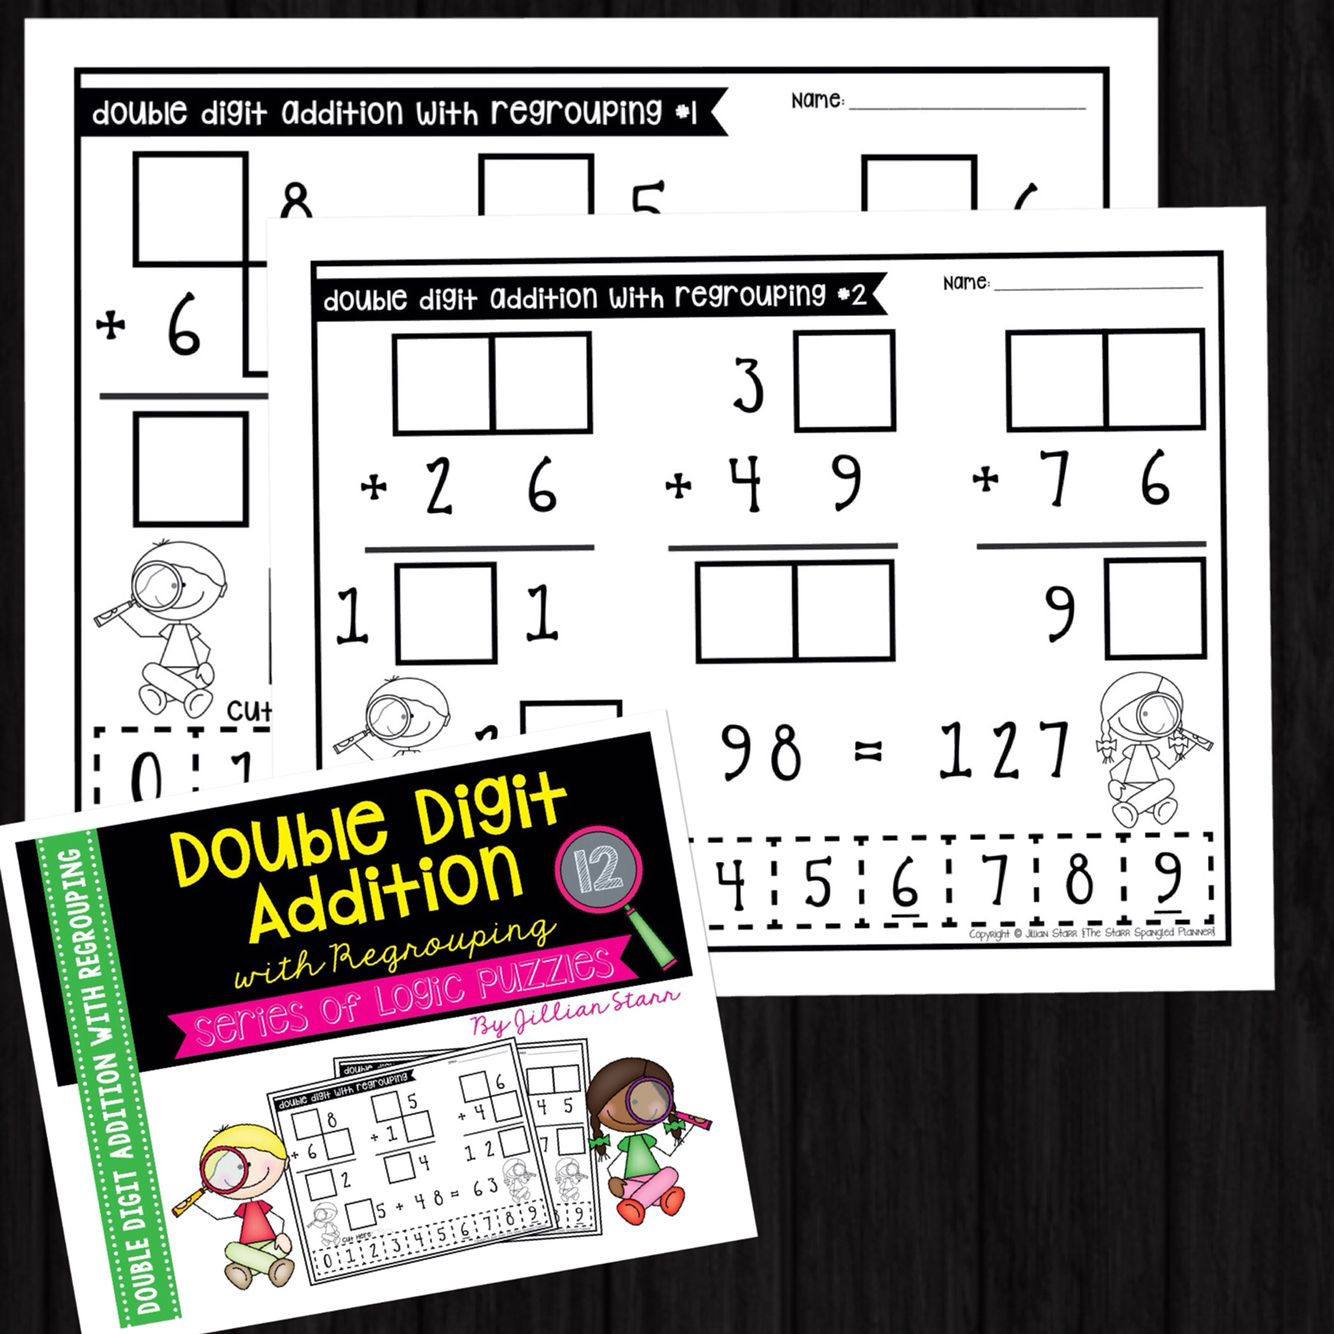 Double Digit Addition With Regrouping Logic Puzzles